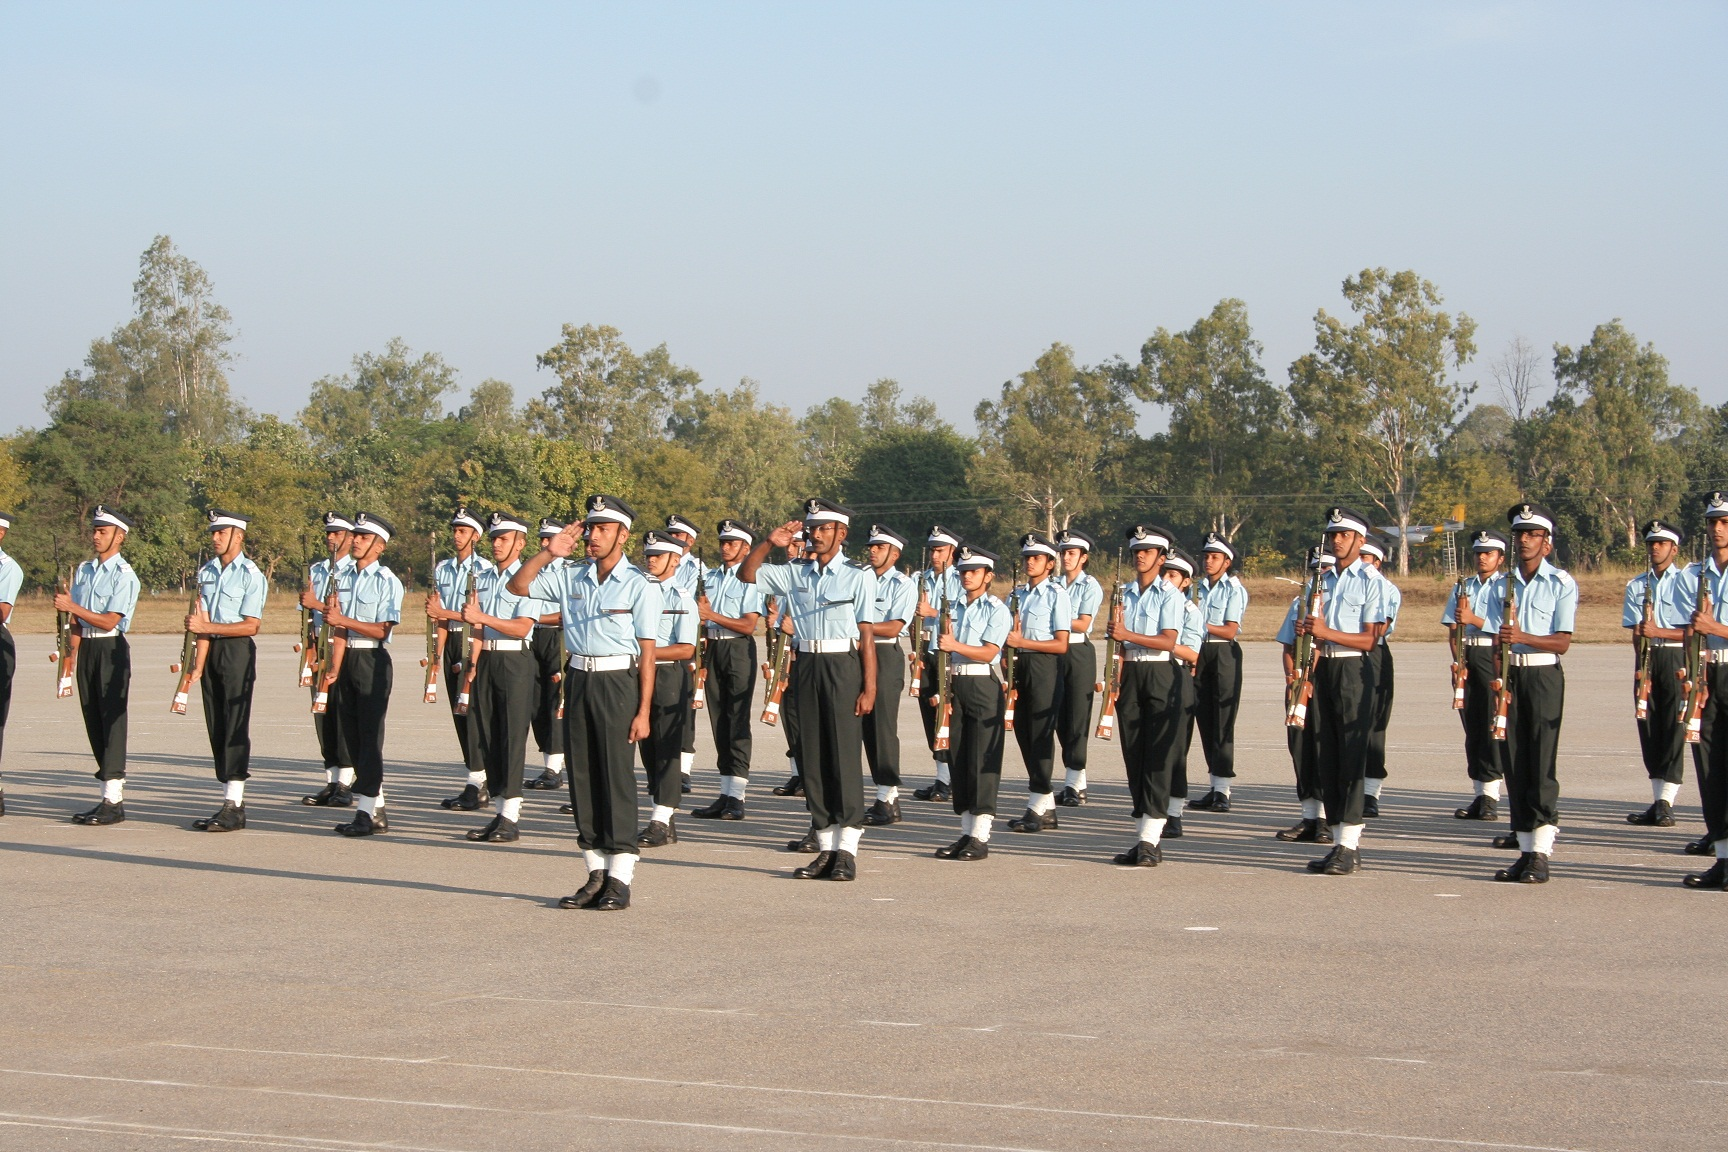 Hd wallpaper indian army - Indian Air Force Academy Wallpapers 1 Indian Air Force Academy Wallpapers 2